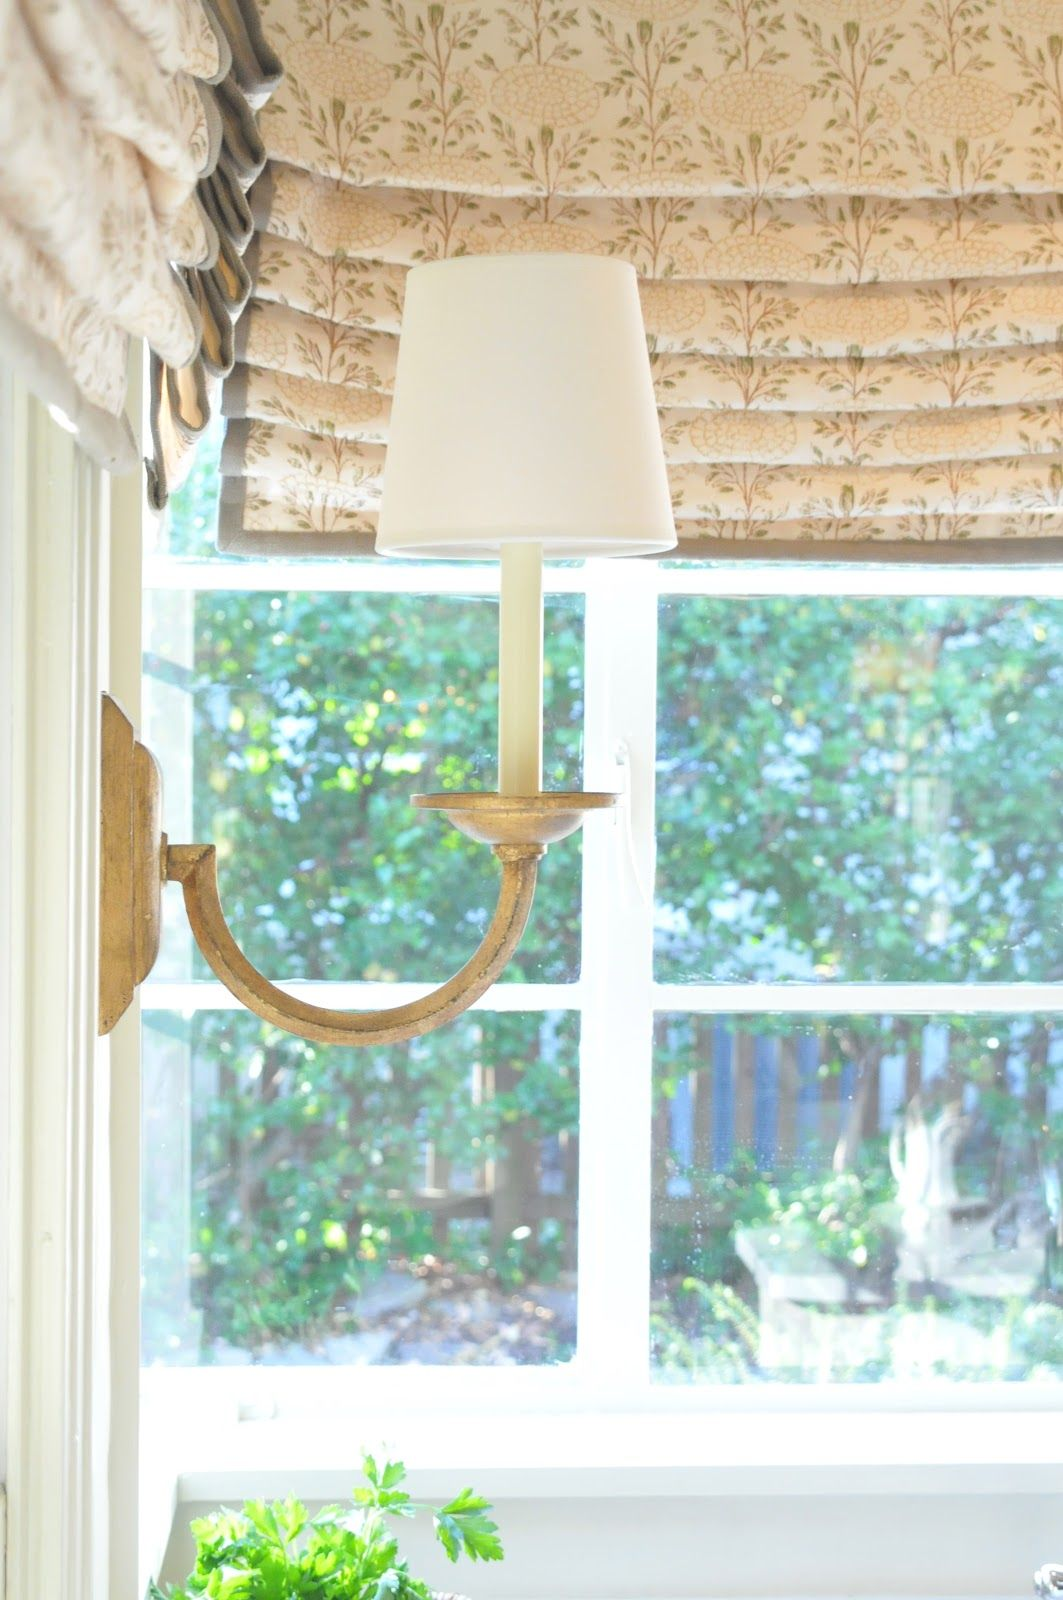 Nine Sixteen Pictures Of Our Kitchen Window Treatments Kitchen Window Treatments Savvy Southern Style